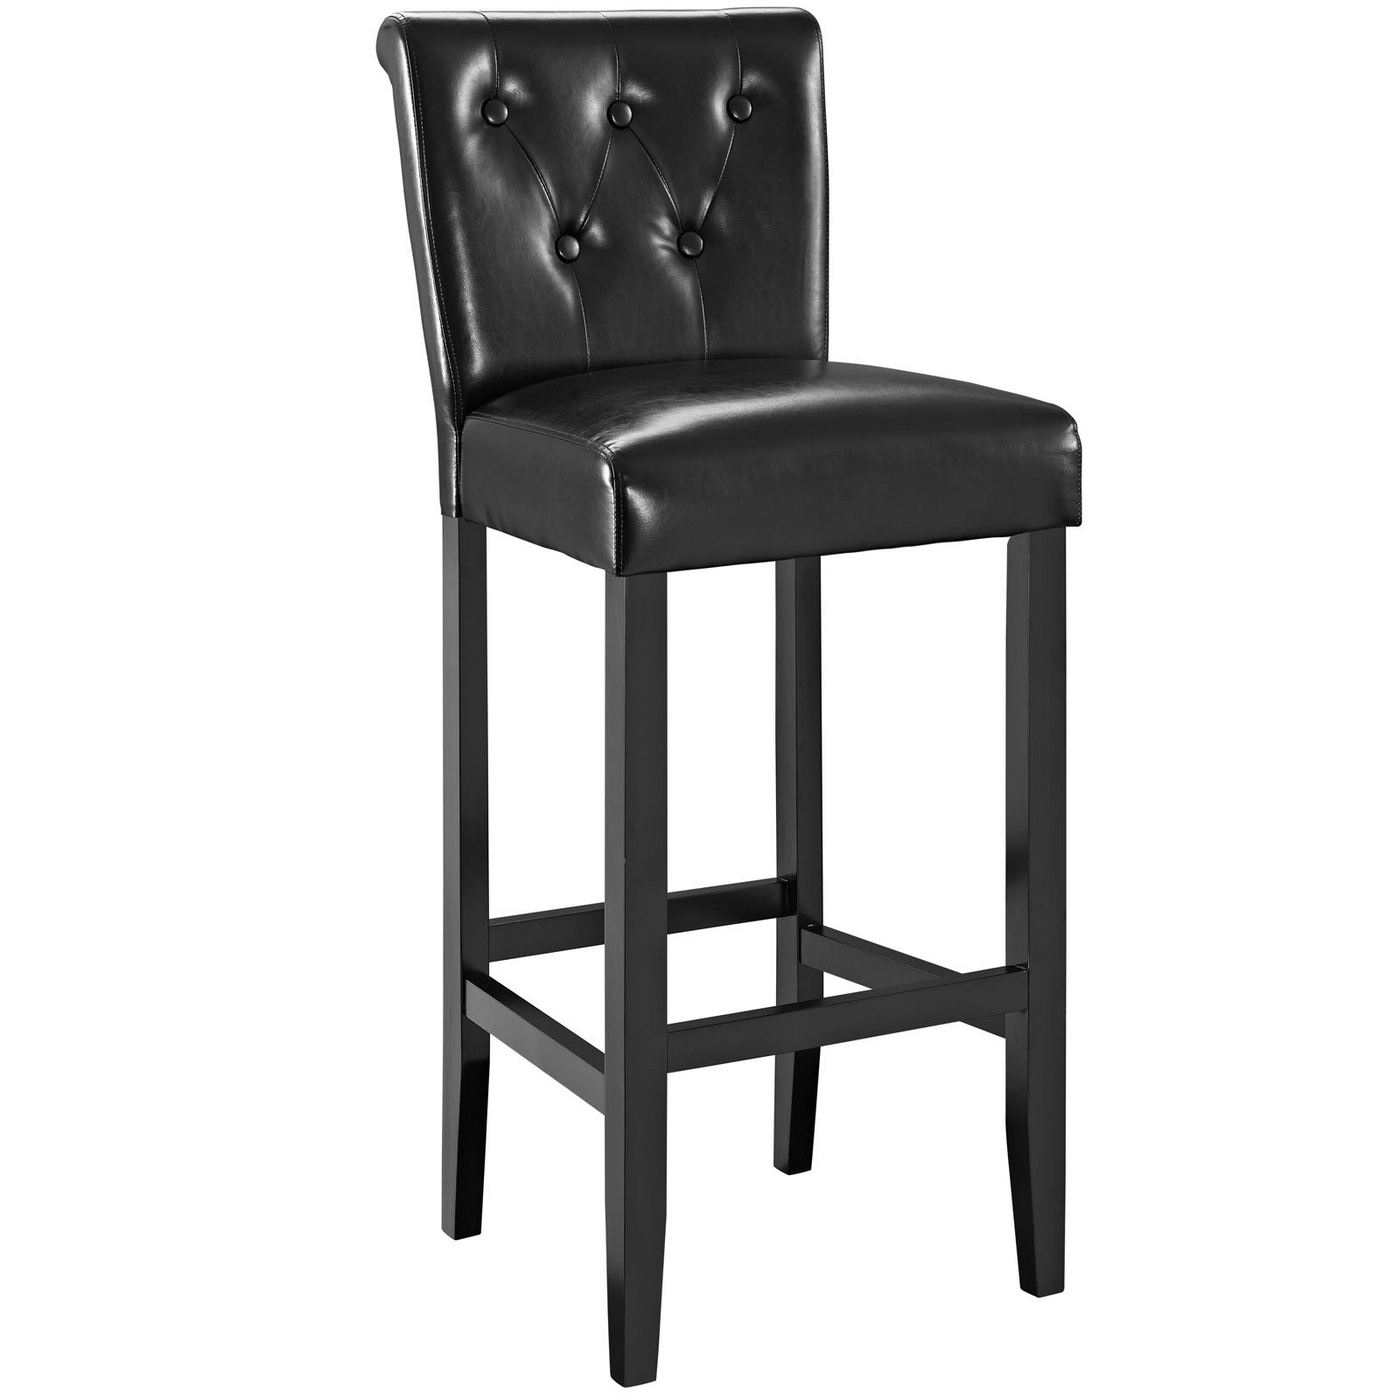 Tender Modern Button tufted Faux Leather Bar Stool Wfoot  : tender modern button tufted faux leather bar stool w foot stretcher black 2 from shopfactorydirect.com size 1400 x 1400 jpeg 203kB